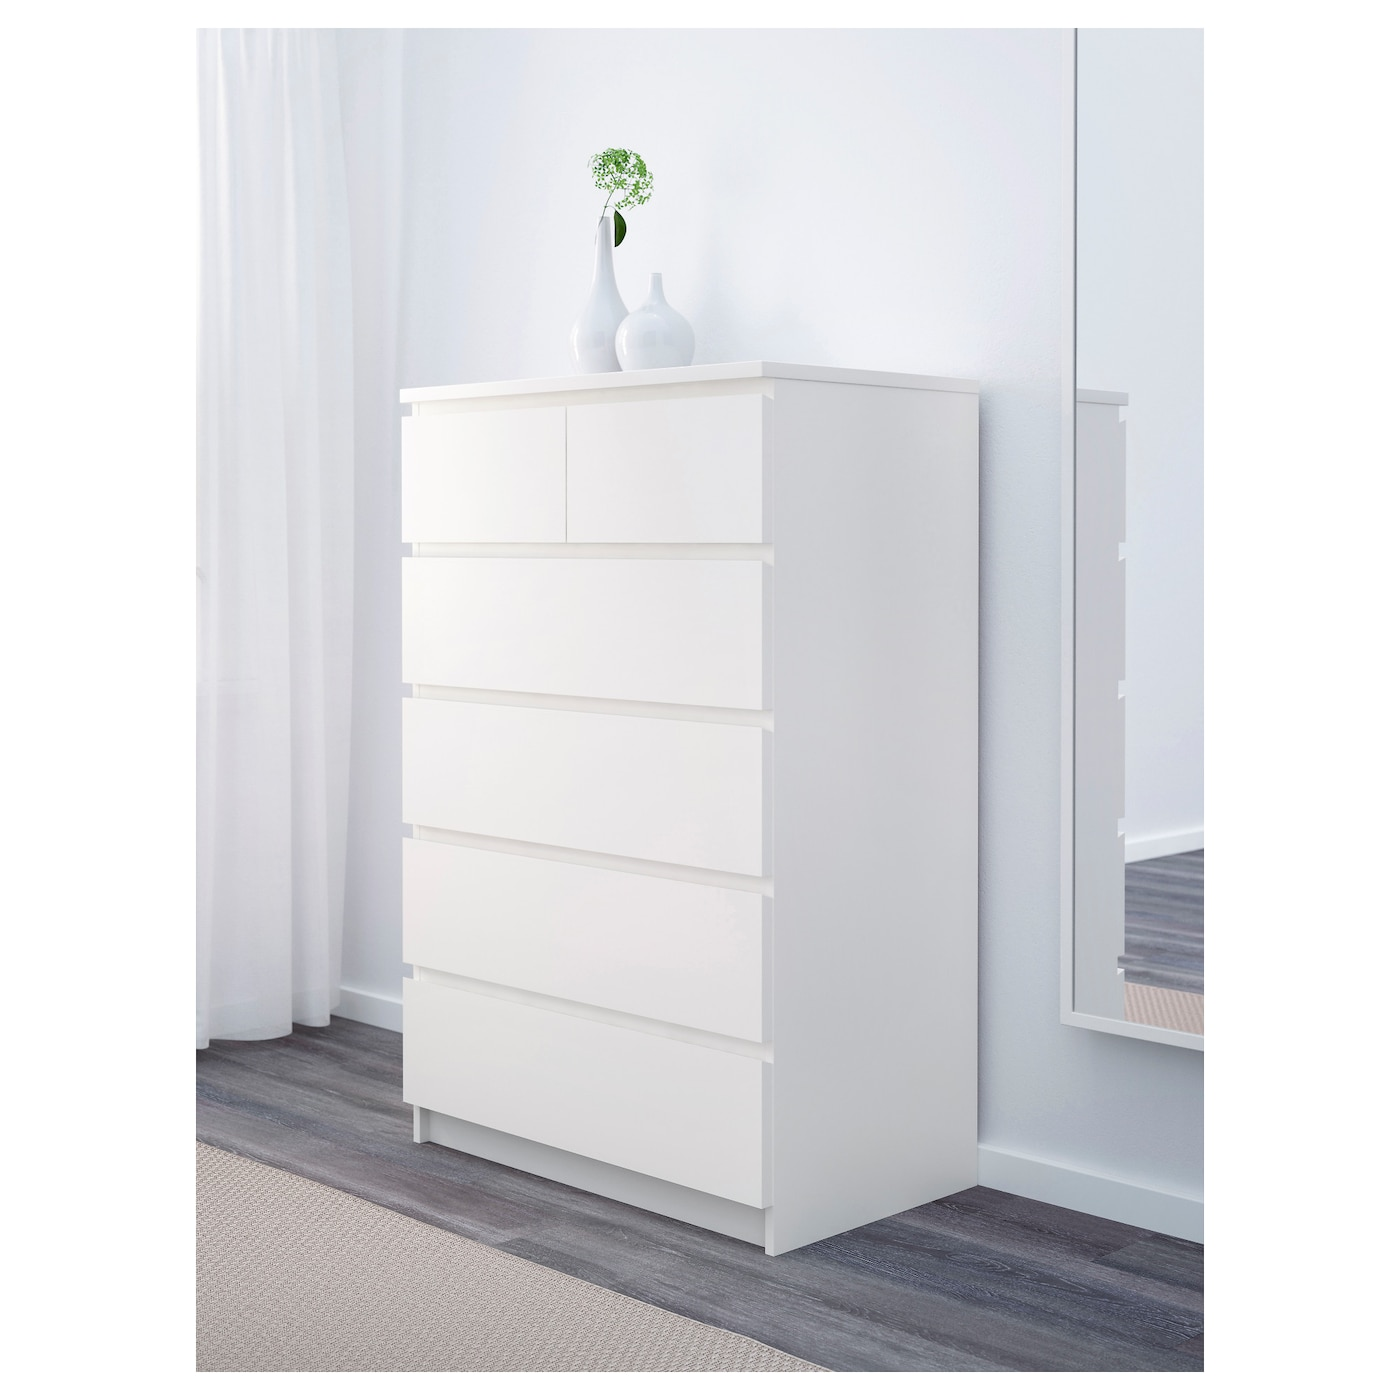 malm chest of 6 drawers white 80 x 123 cm ikea. Black Bedroom Furniture Sets. Home Design Ideas